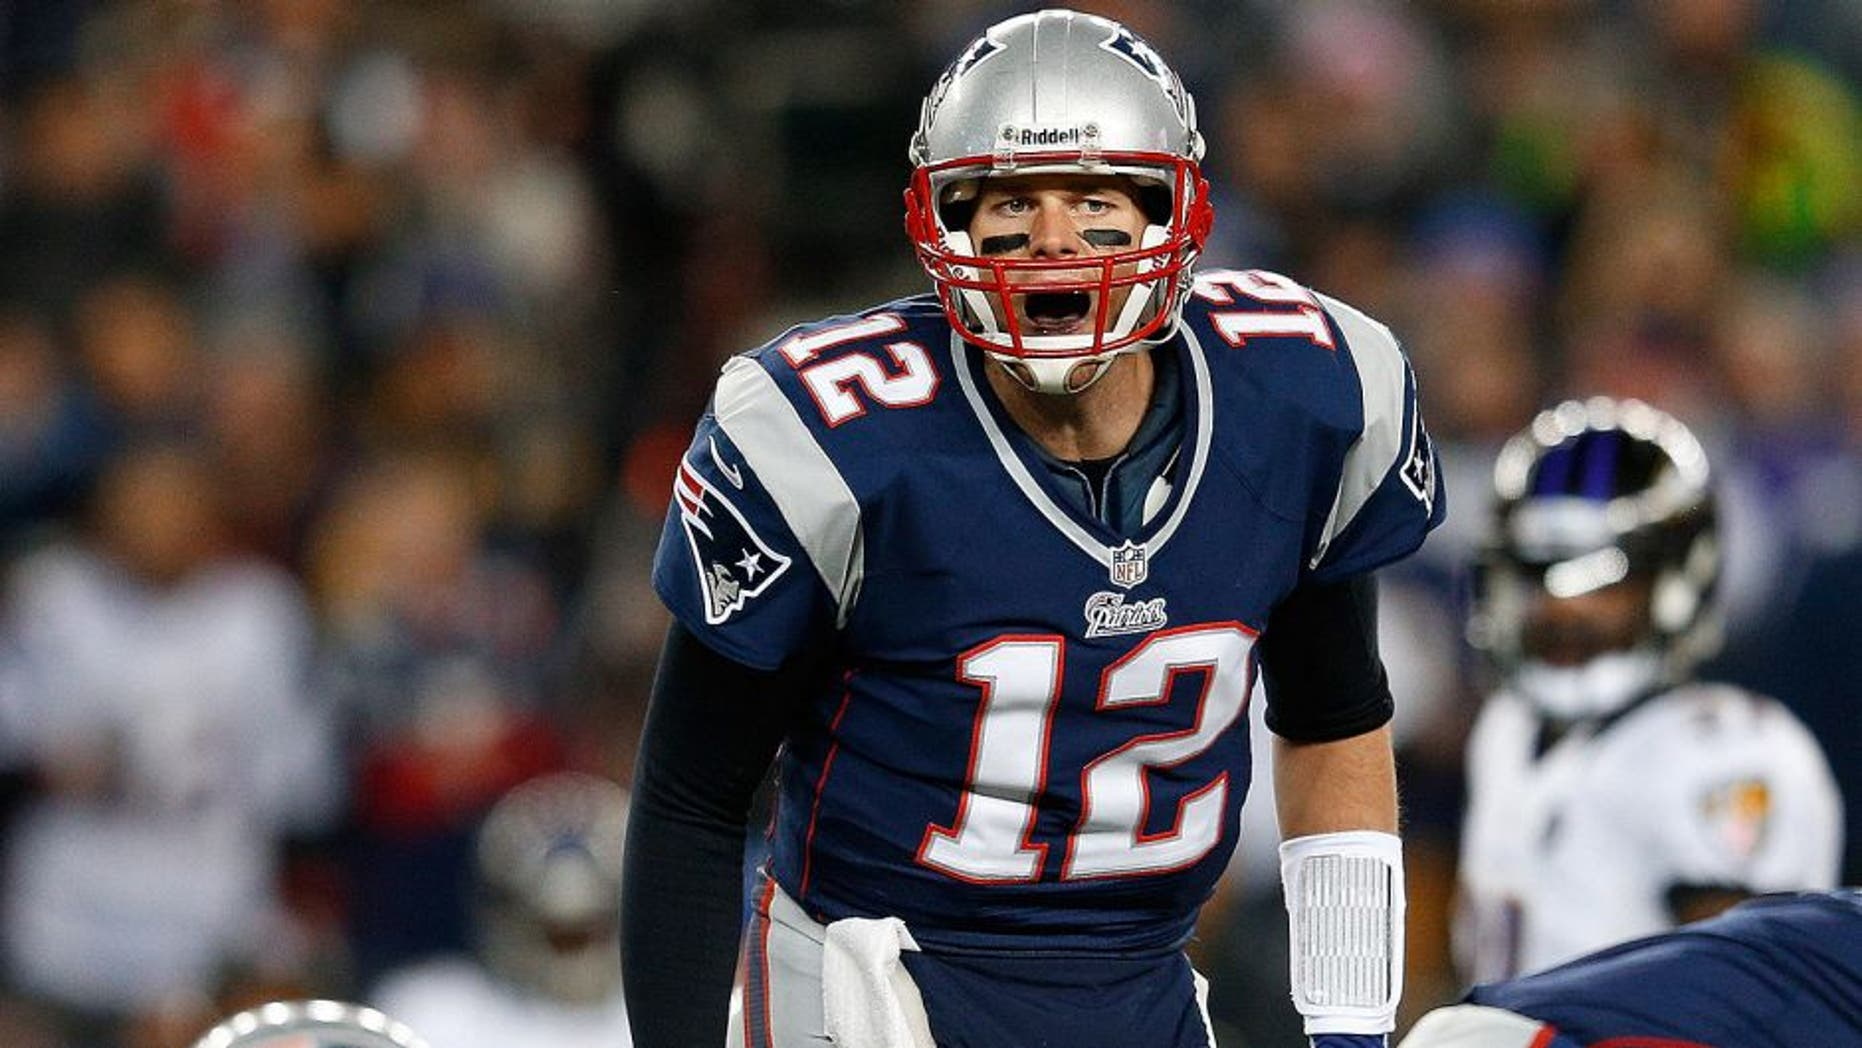 FOXBORO, MA - JANUARY 20: Tom Brady #12 of the New England Patriots makes an adjustment at the line against the Baltimore Ravens during the 2013 AFC Championship game at Gillette Stadium on January 20, 2013 in Foxboro, Massachusetts. (Photo by Jim Rogash/Getty Images)